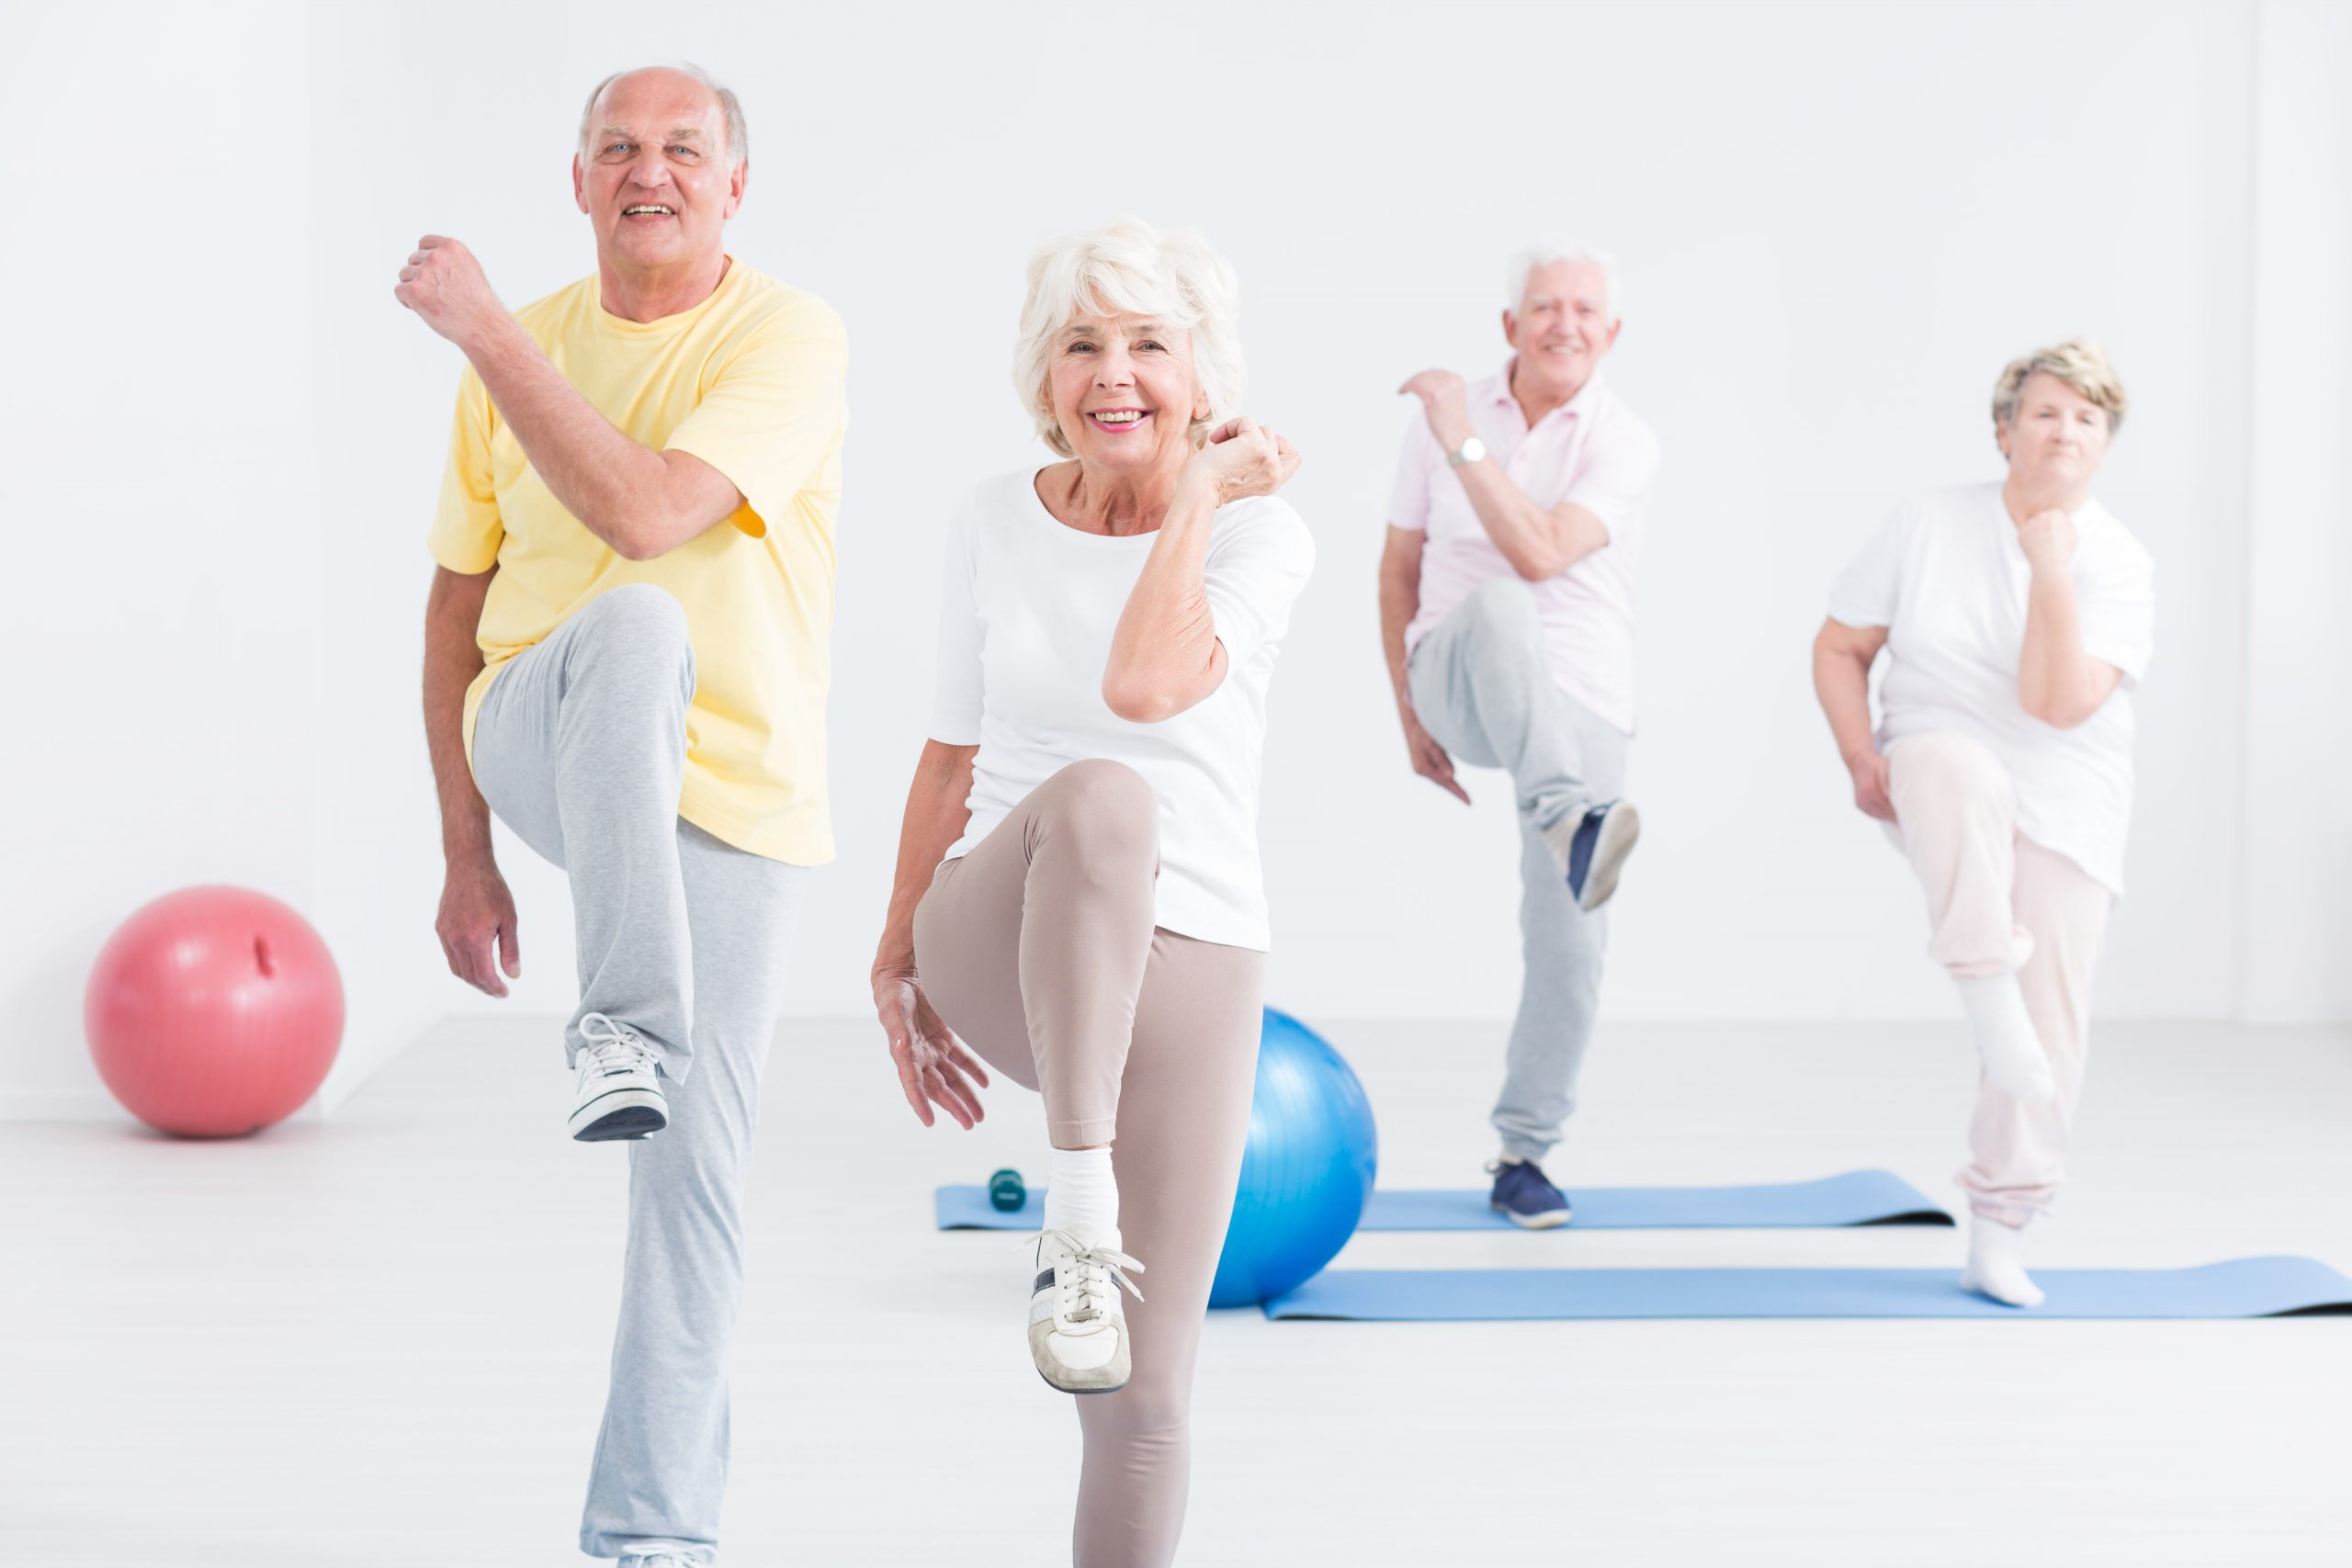 Don't Let COVID-19 Prevent Seniors From Being Active